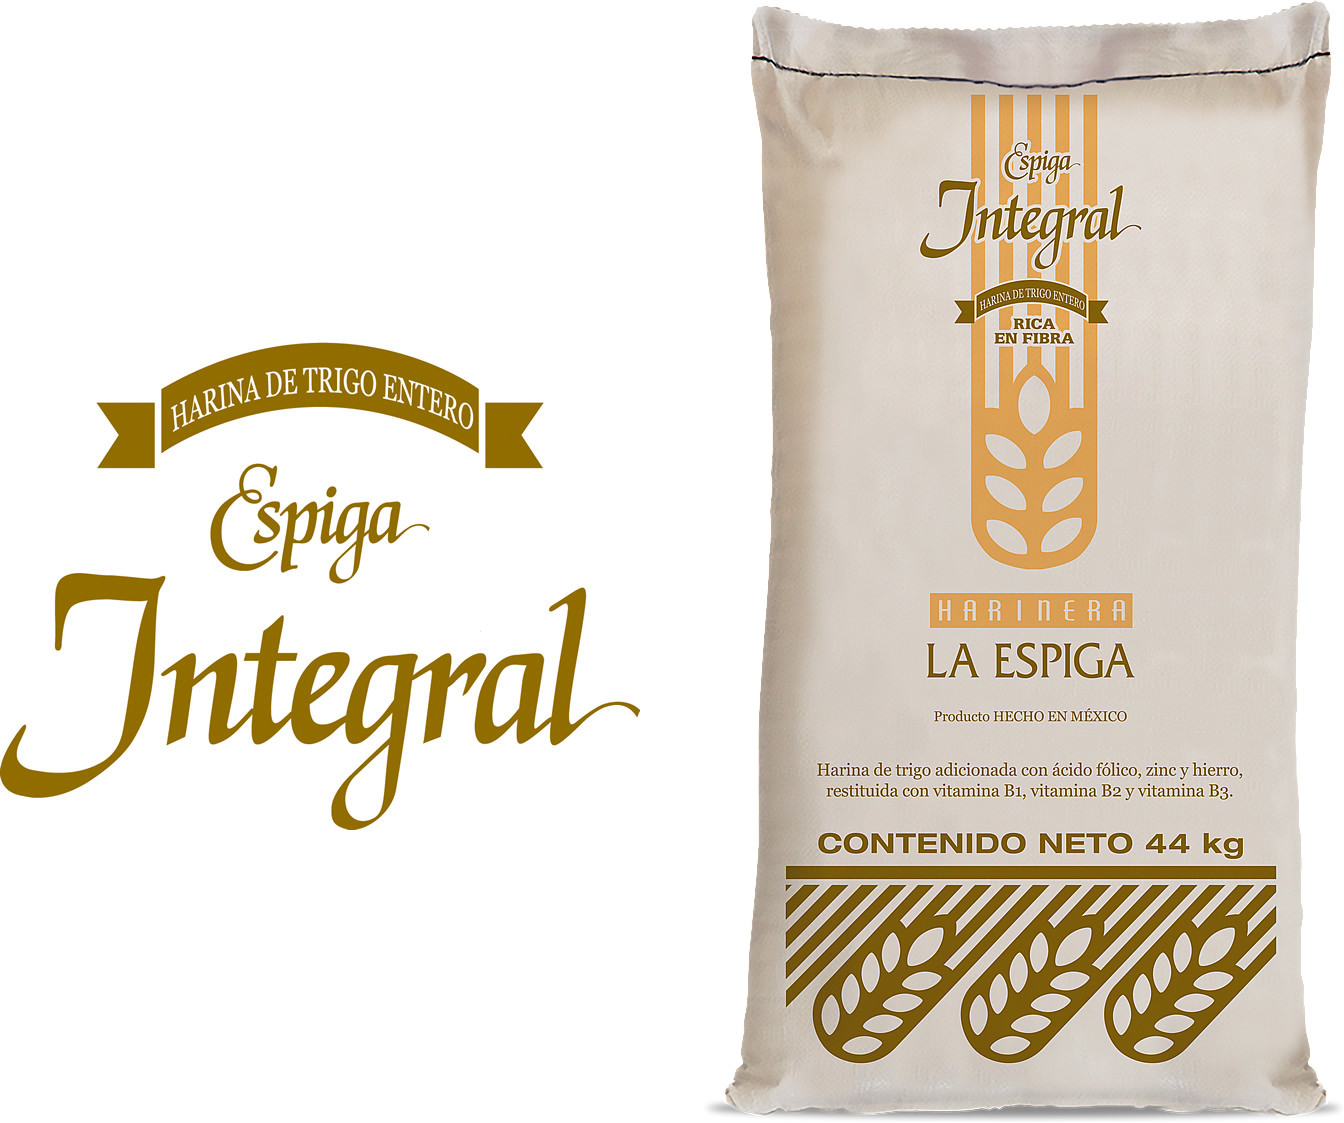 Espiga Integral is a multipurpose wheat flour perfect for whole-wheat breads.